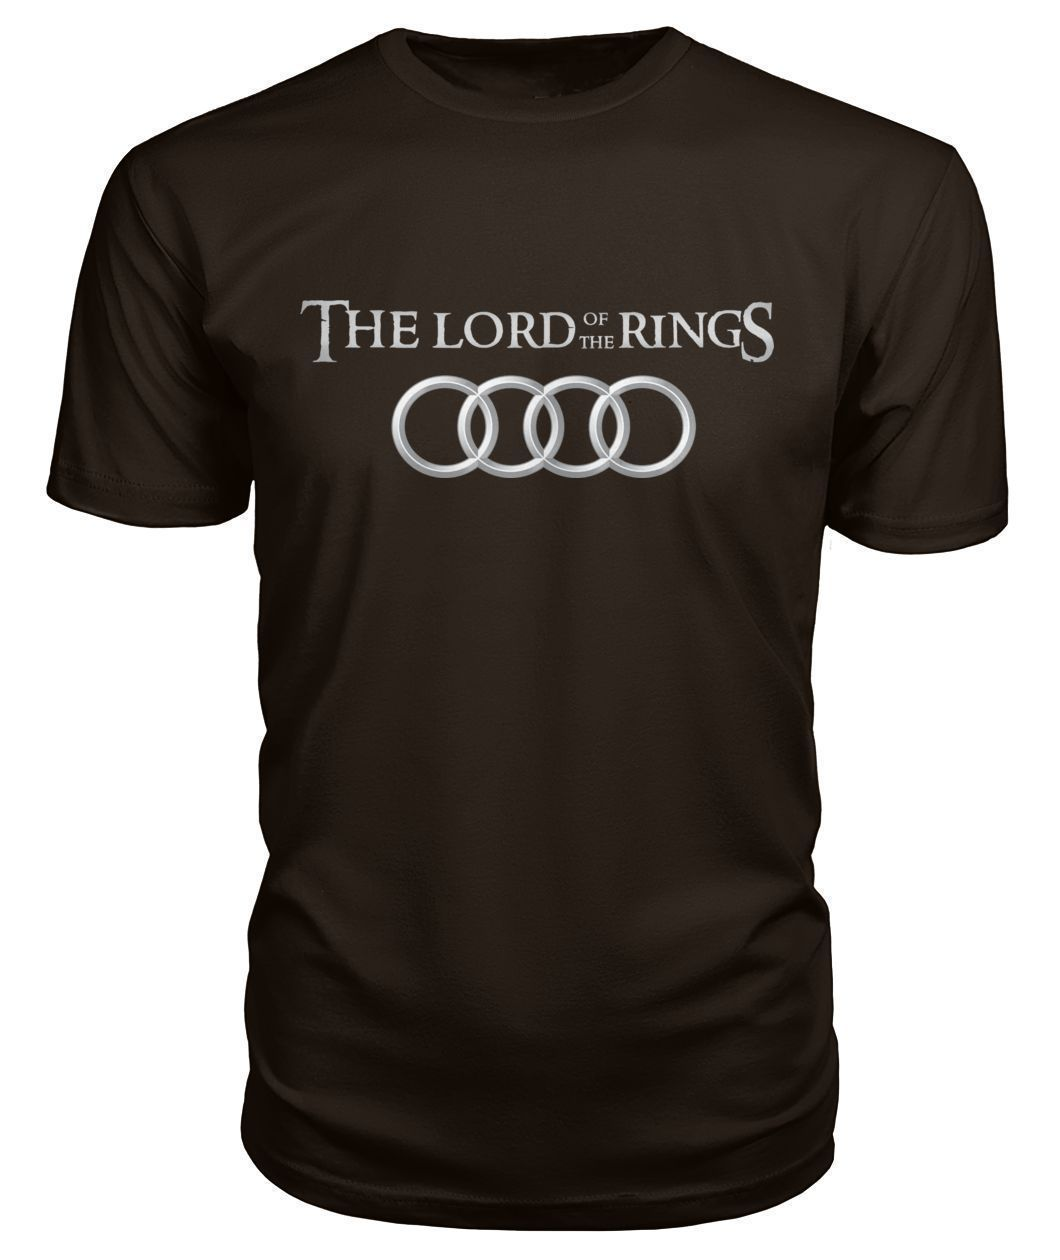 'Lord of the Rings' Premium Tee